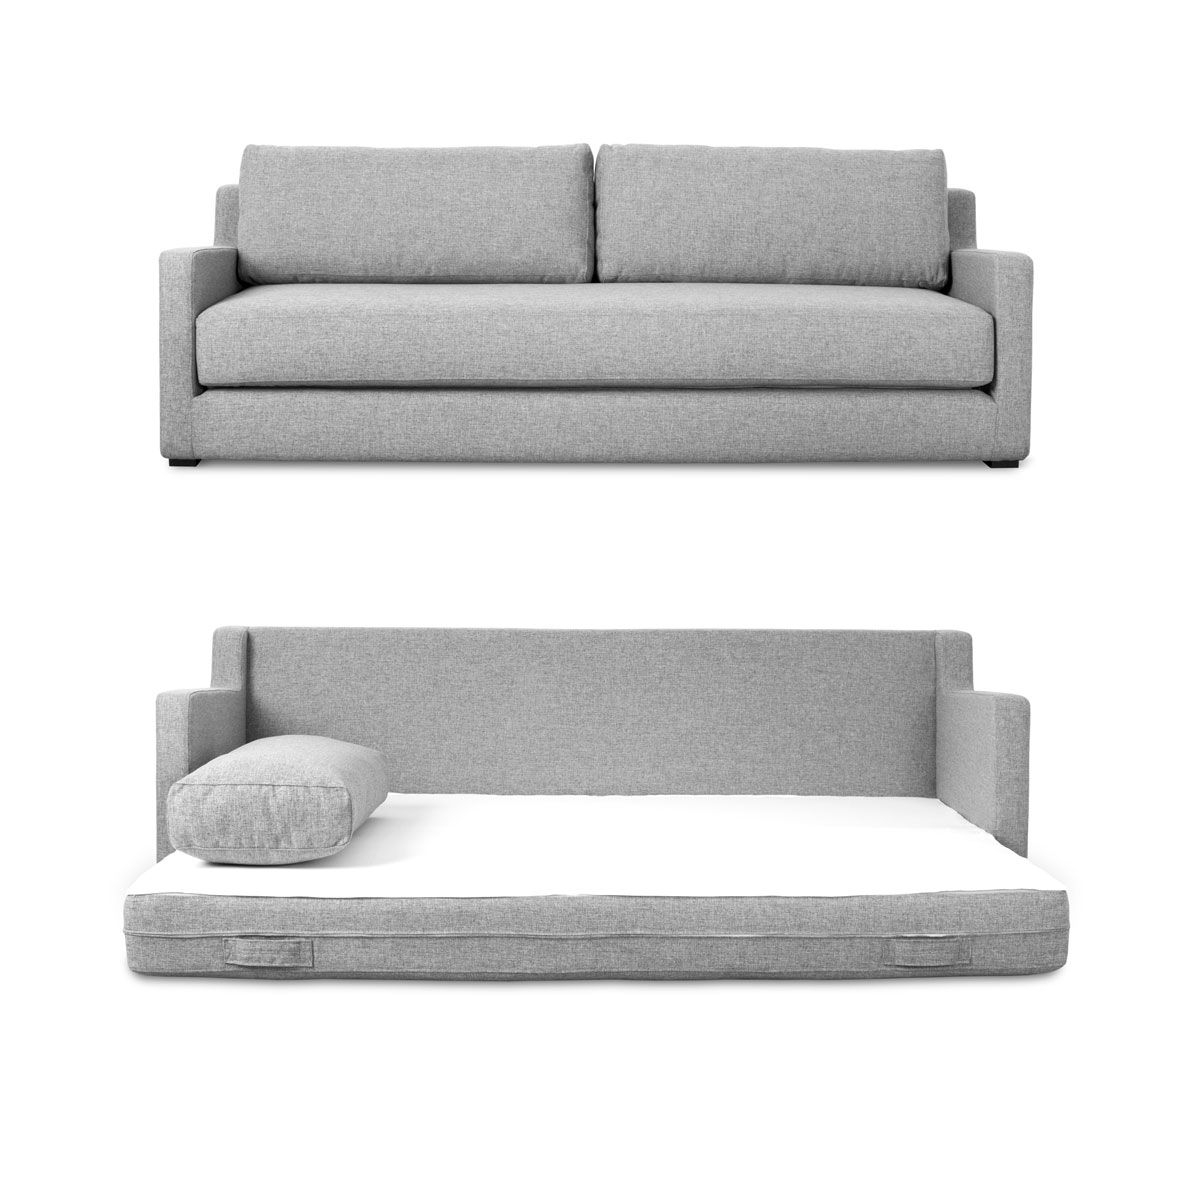 queen size convertible sofa bed ideas on foter rh foter com